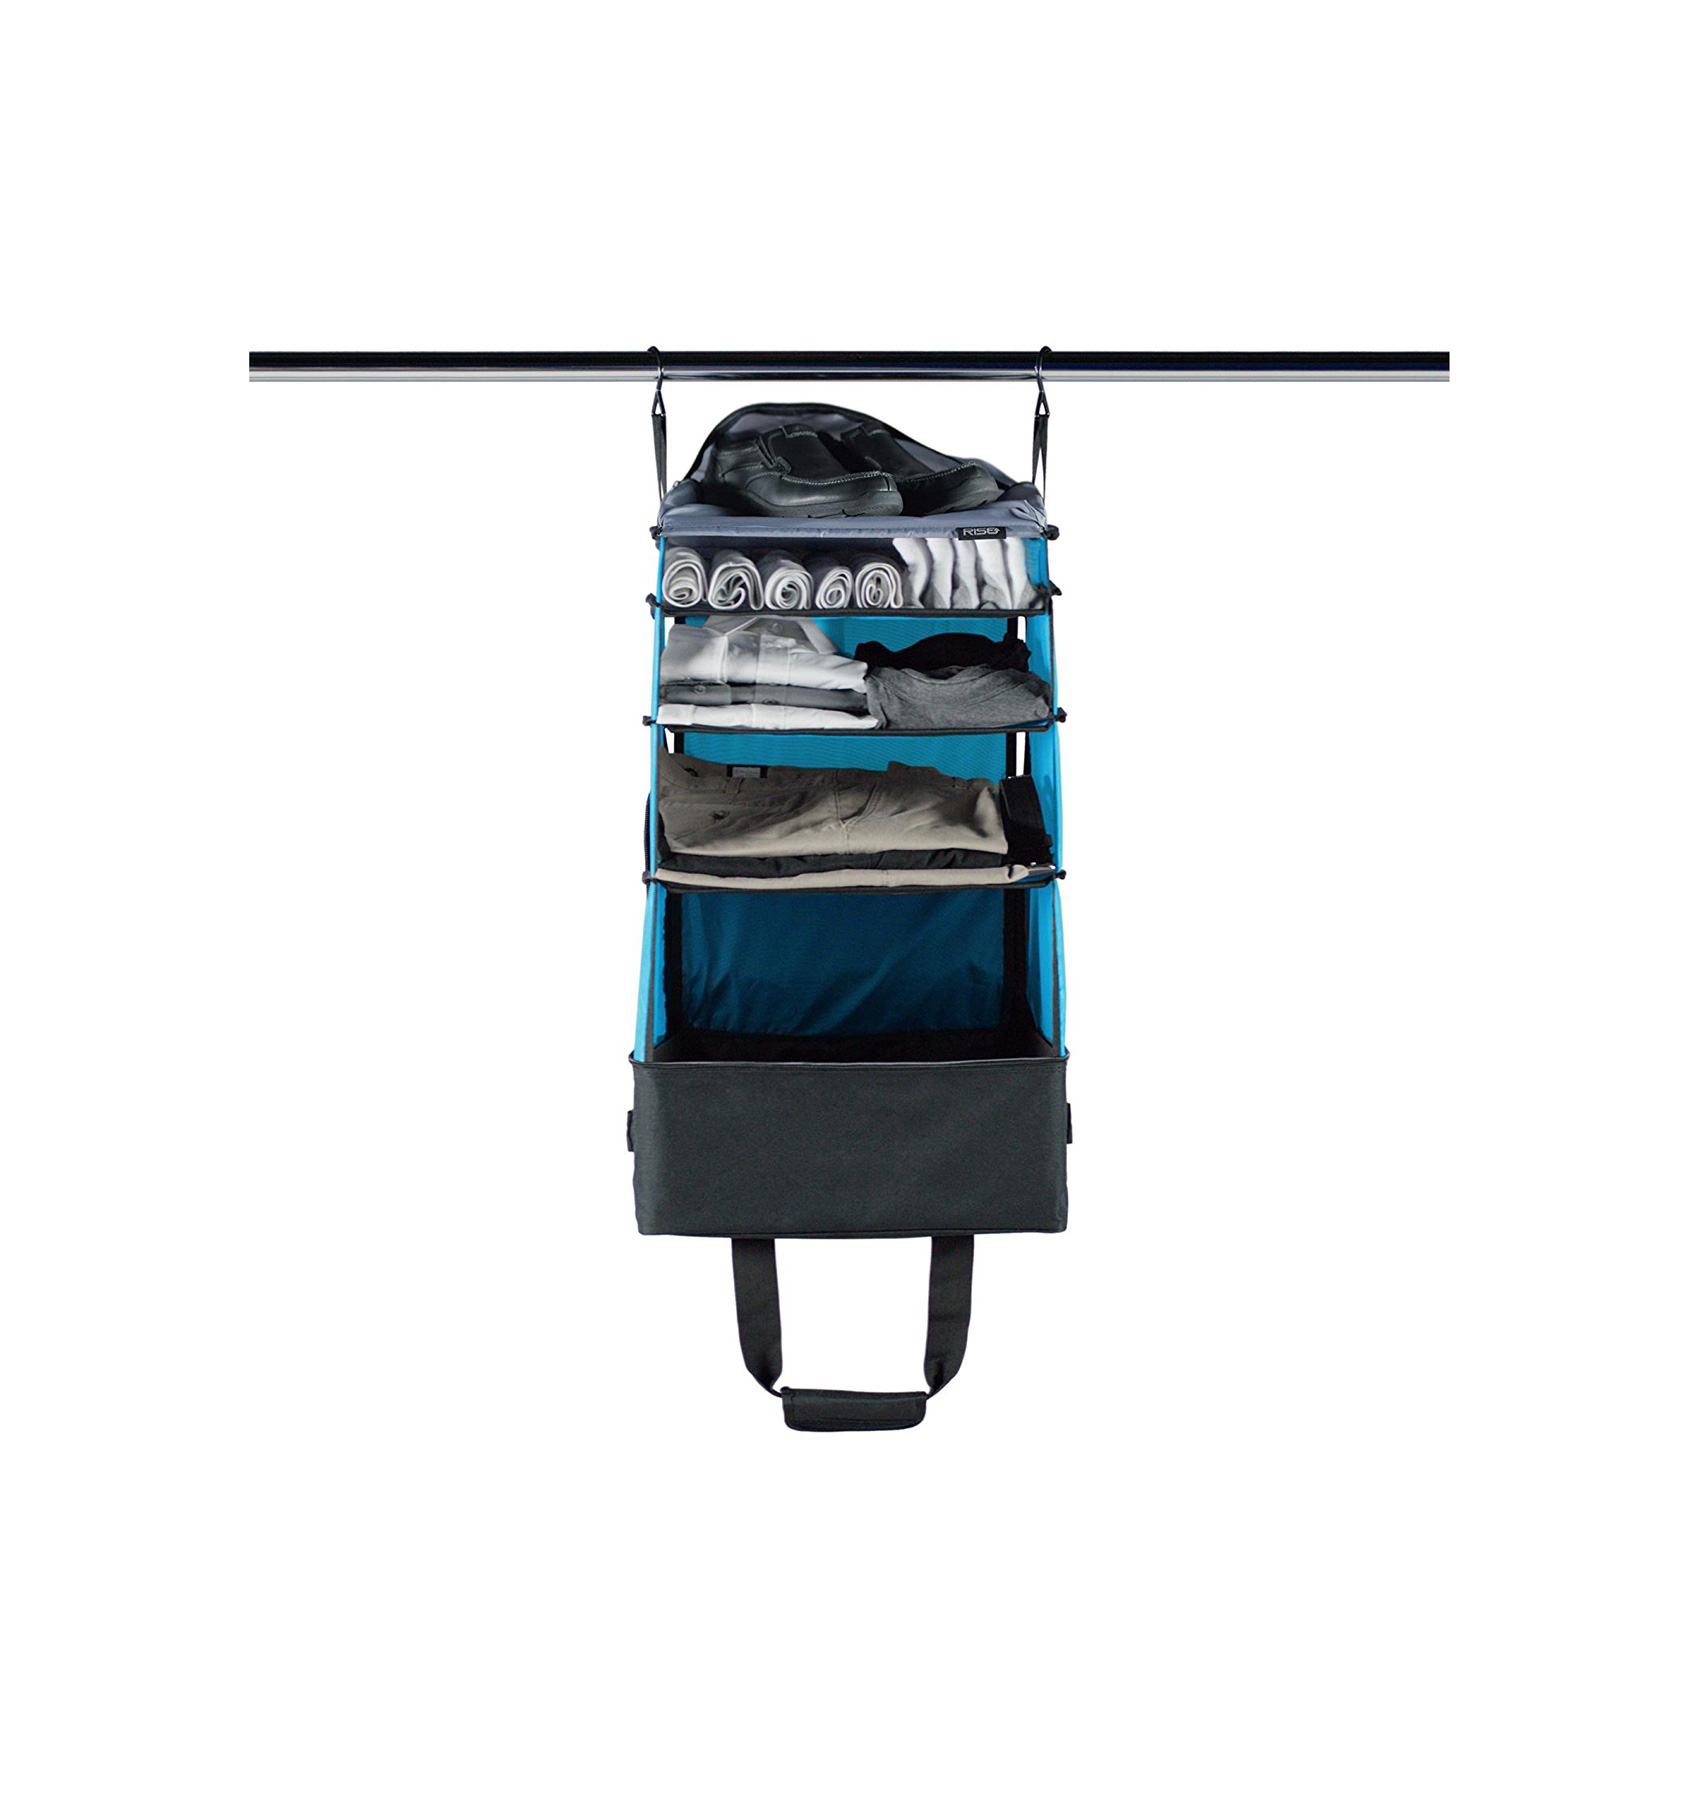 Portable Shelving Luggage, Rise Gear Jumper